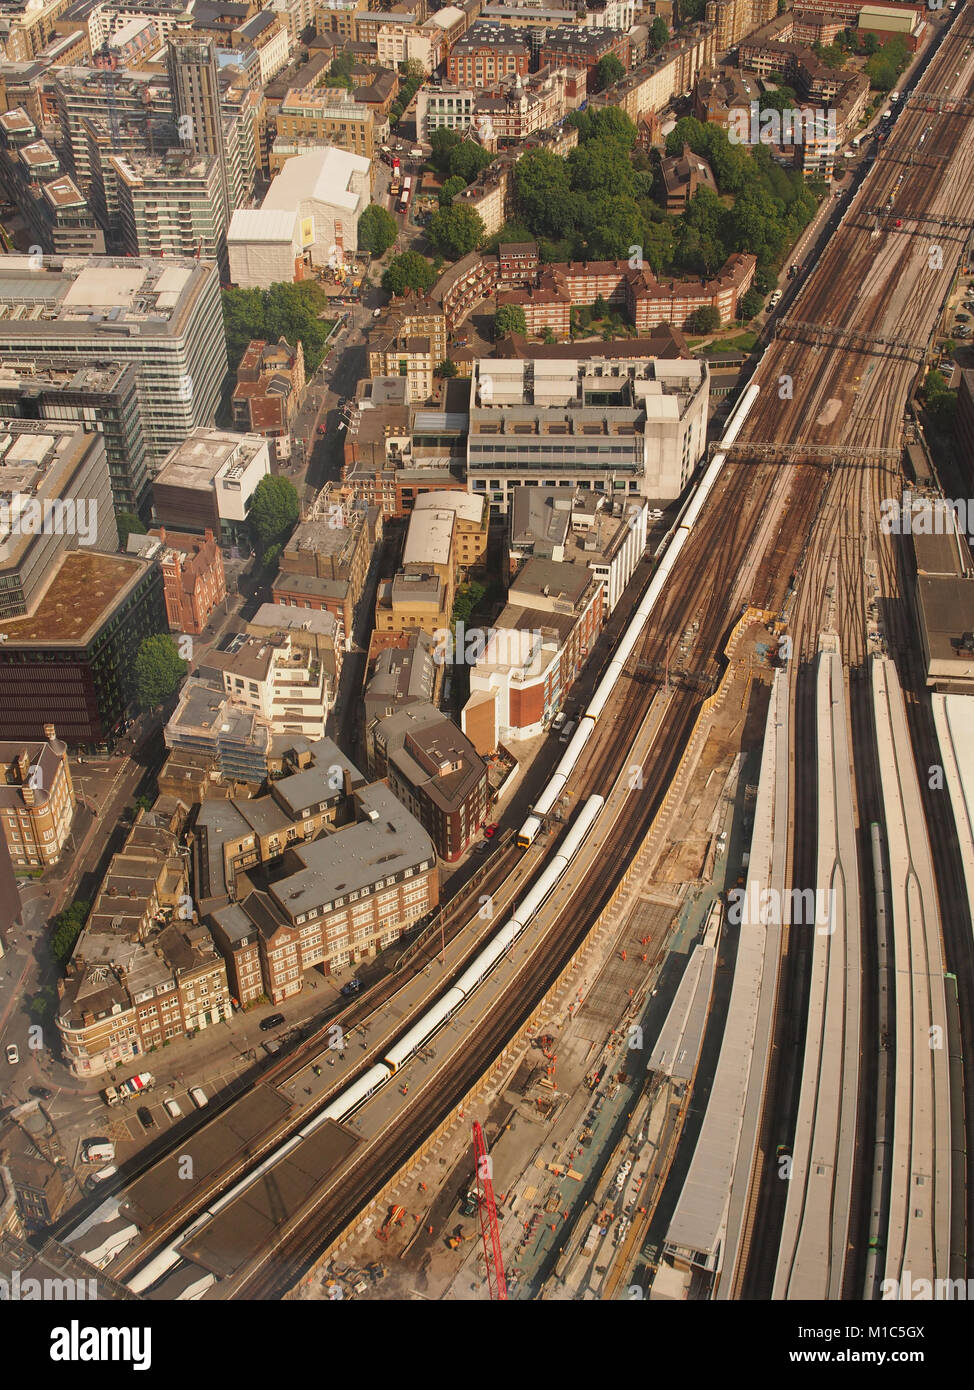 A view looking down from the top viewing floor of The Shard, London, to the train tracks and trains coming into - Stock Image